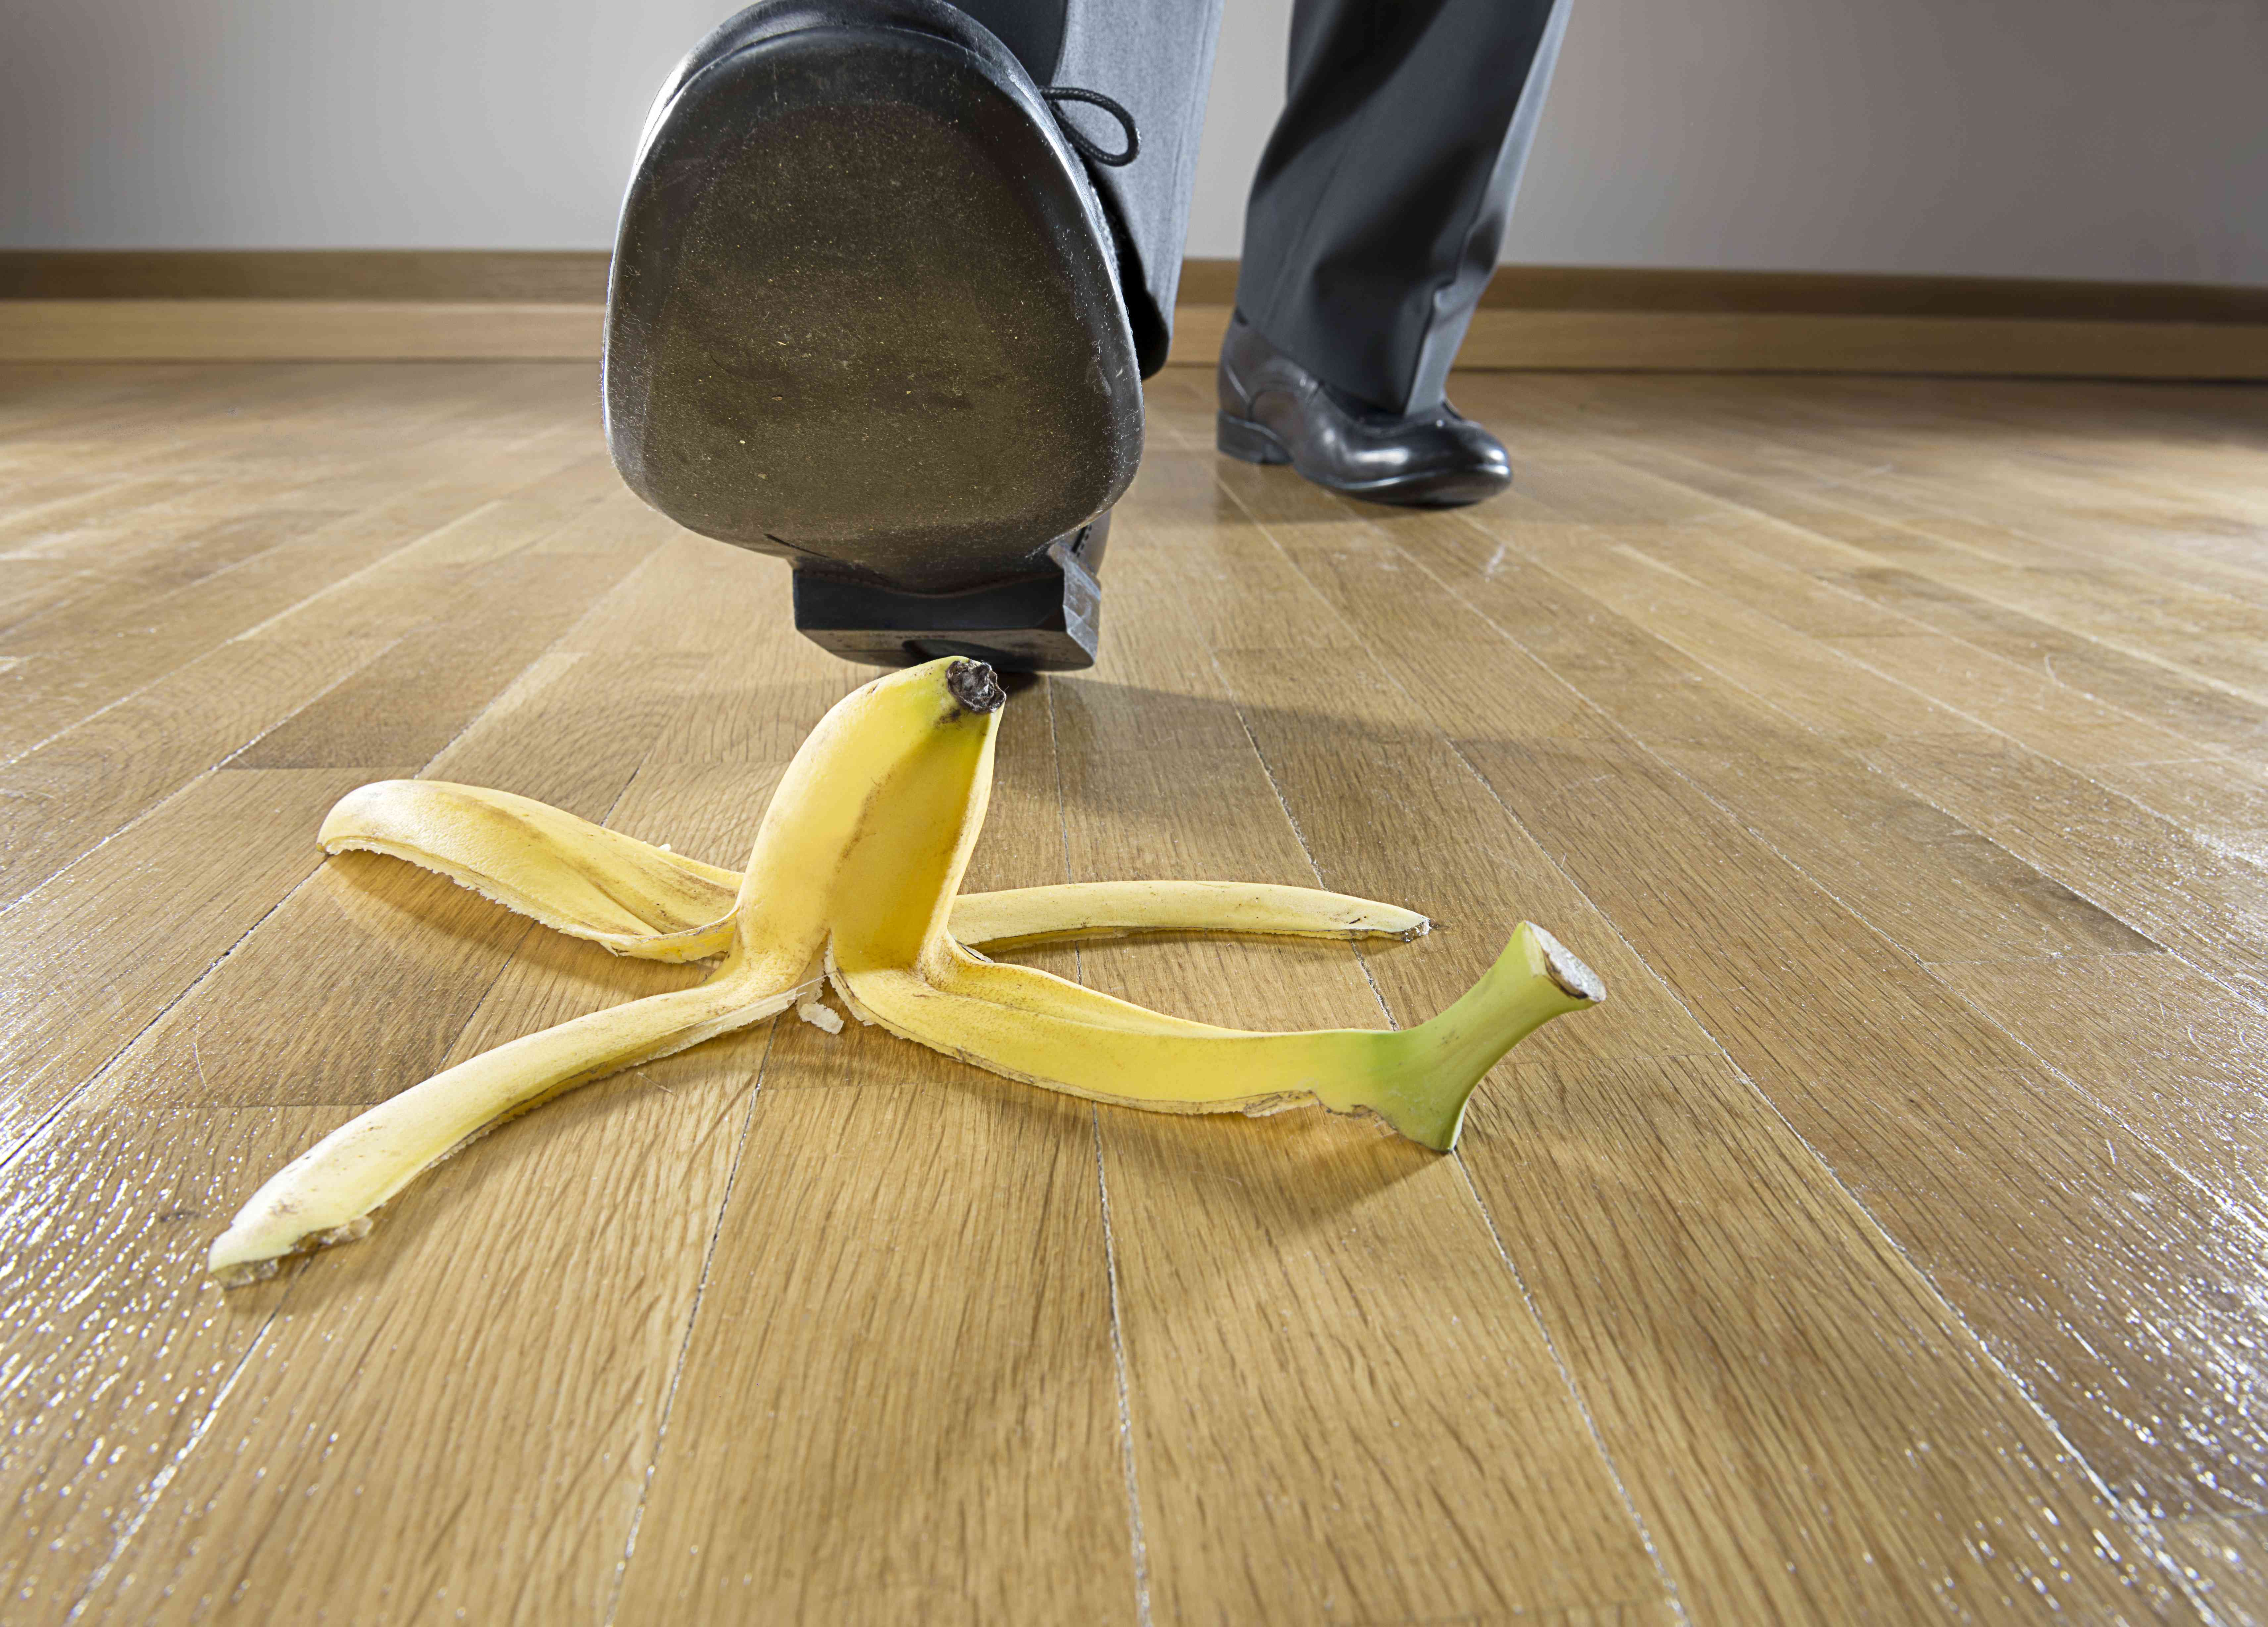 A man about to step on a banana peel.